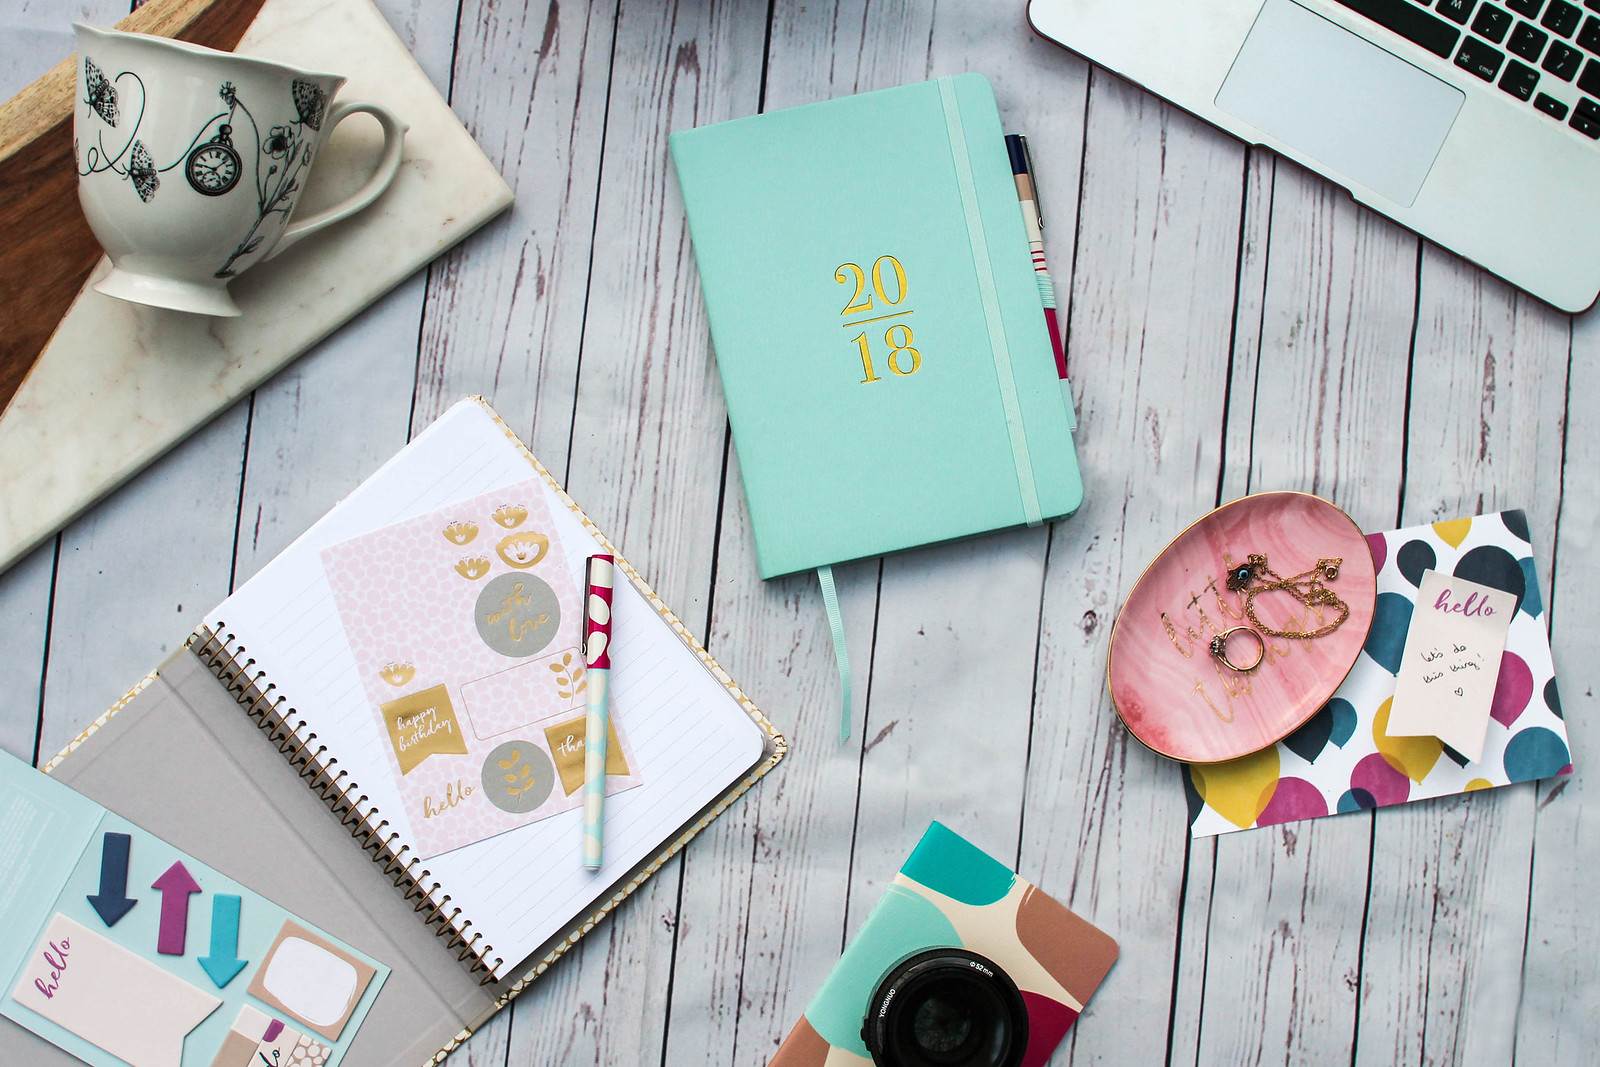 2018 Blogging Goals The Little Things Busy B Stationery Design Diary Planner